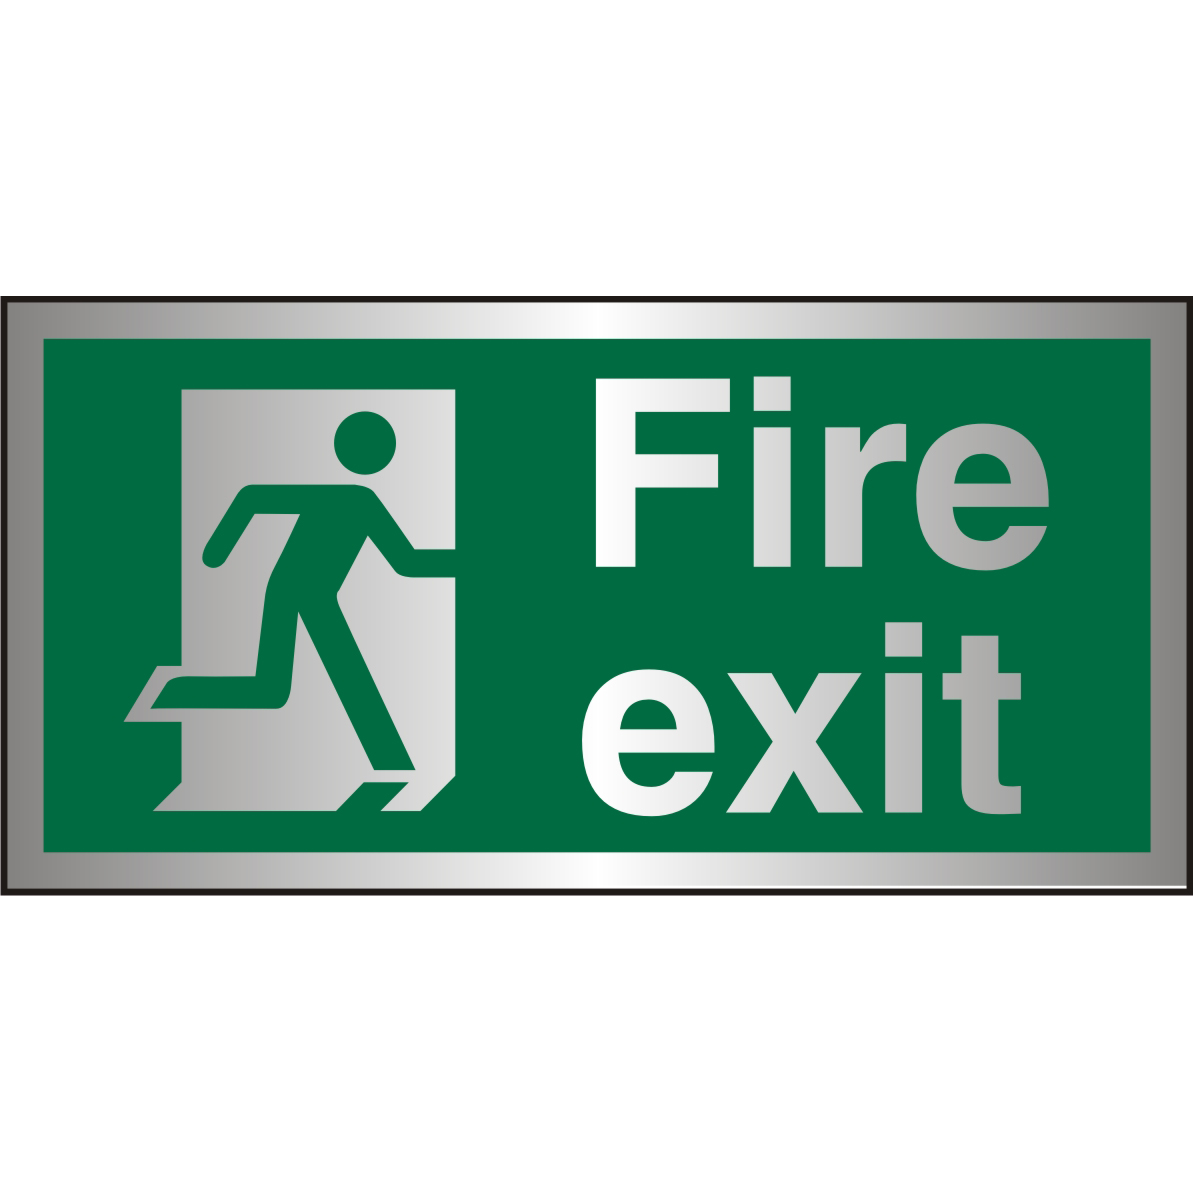 Brushed Alu Sign 300x150 1.5mm Alu S/A FireExit Man Run Right Ref BASP318300x150 Up to 10 Day Leadtime